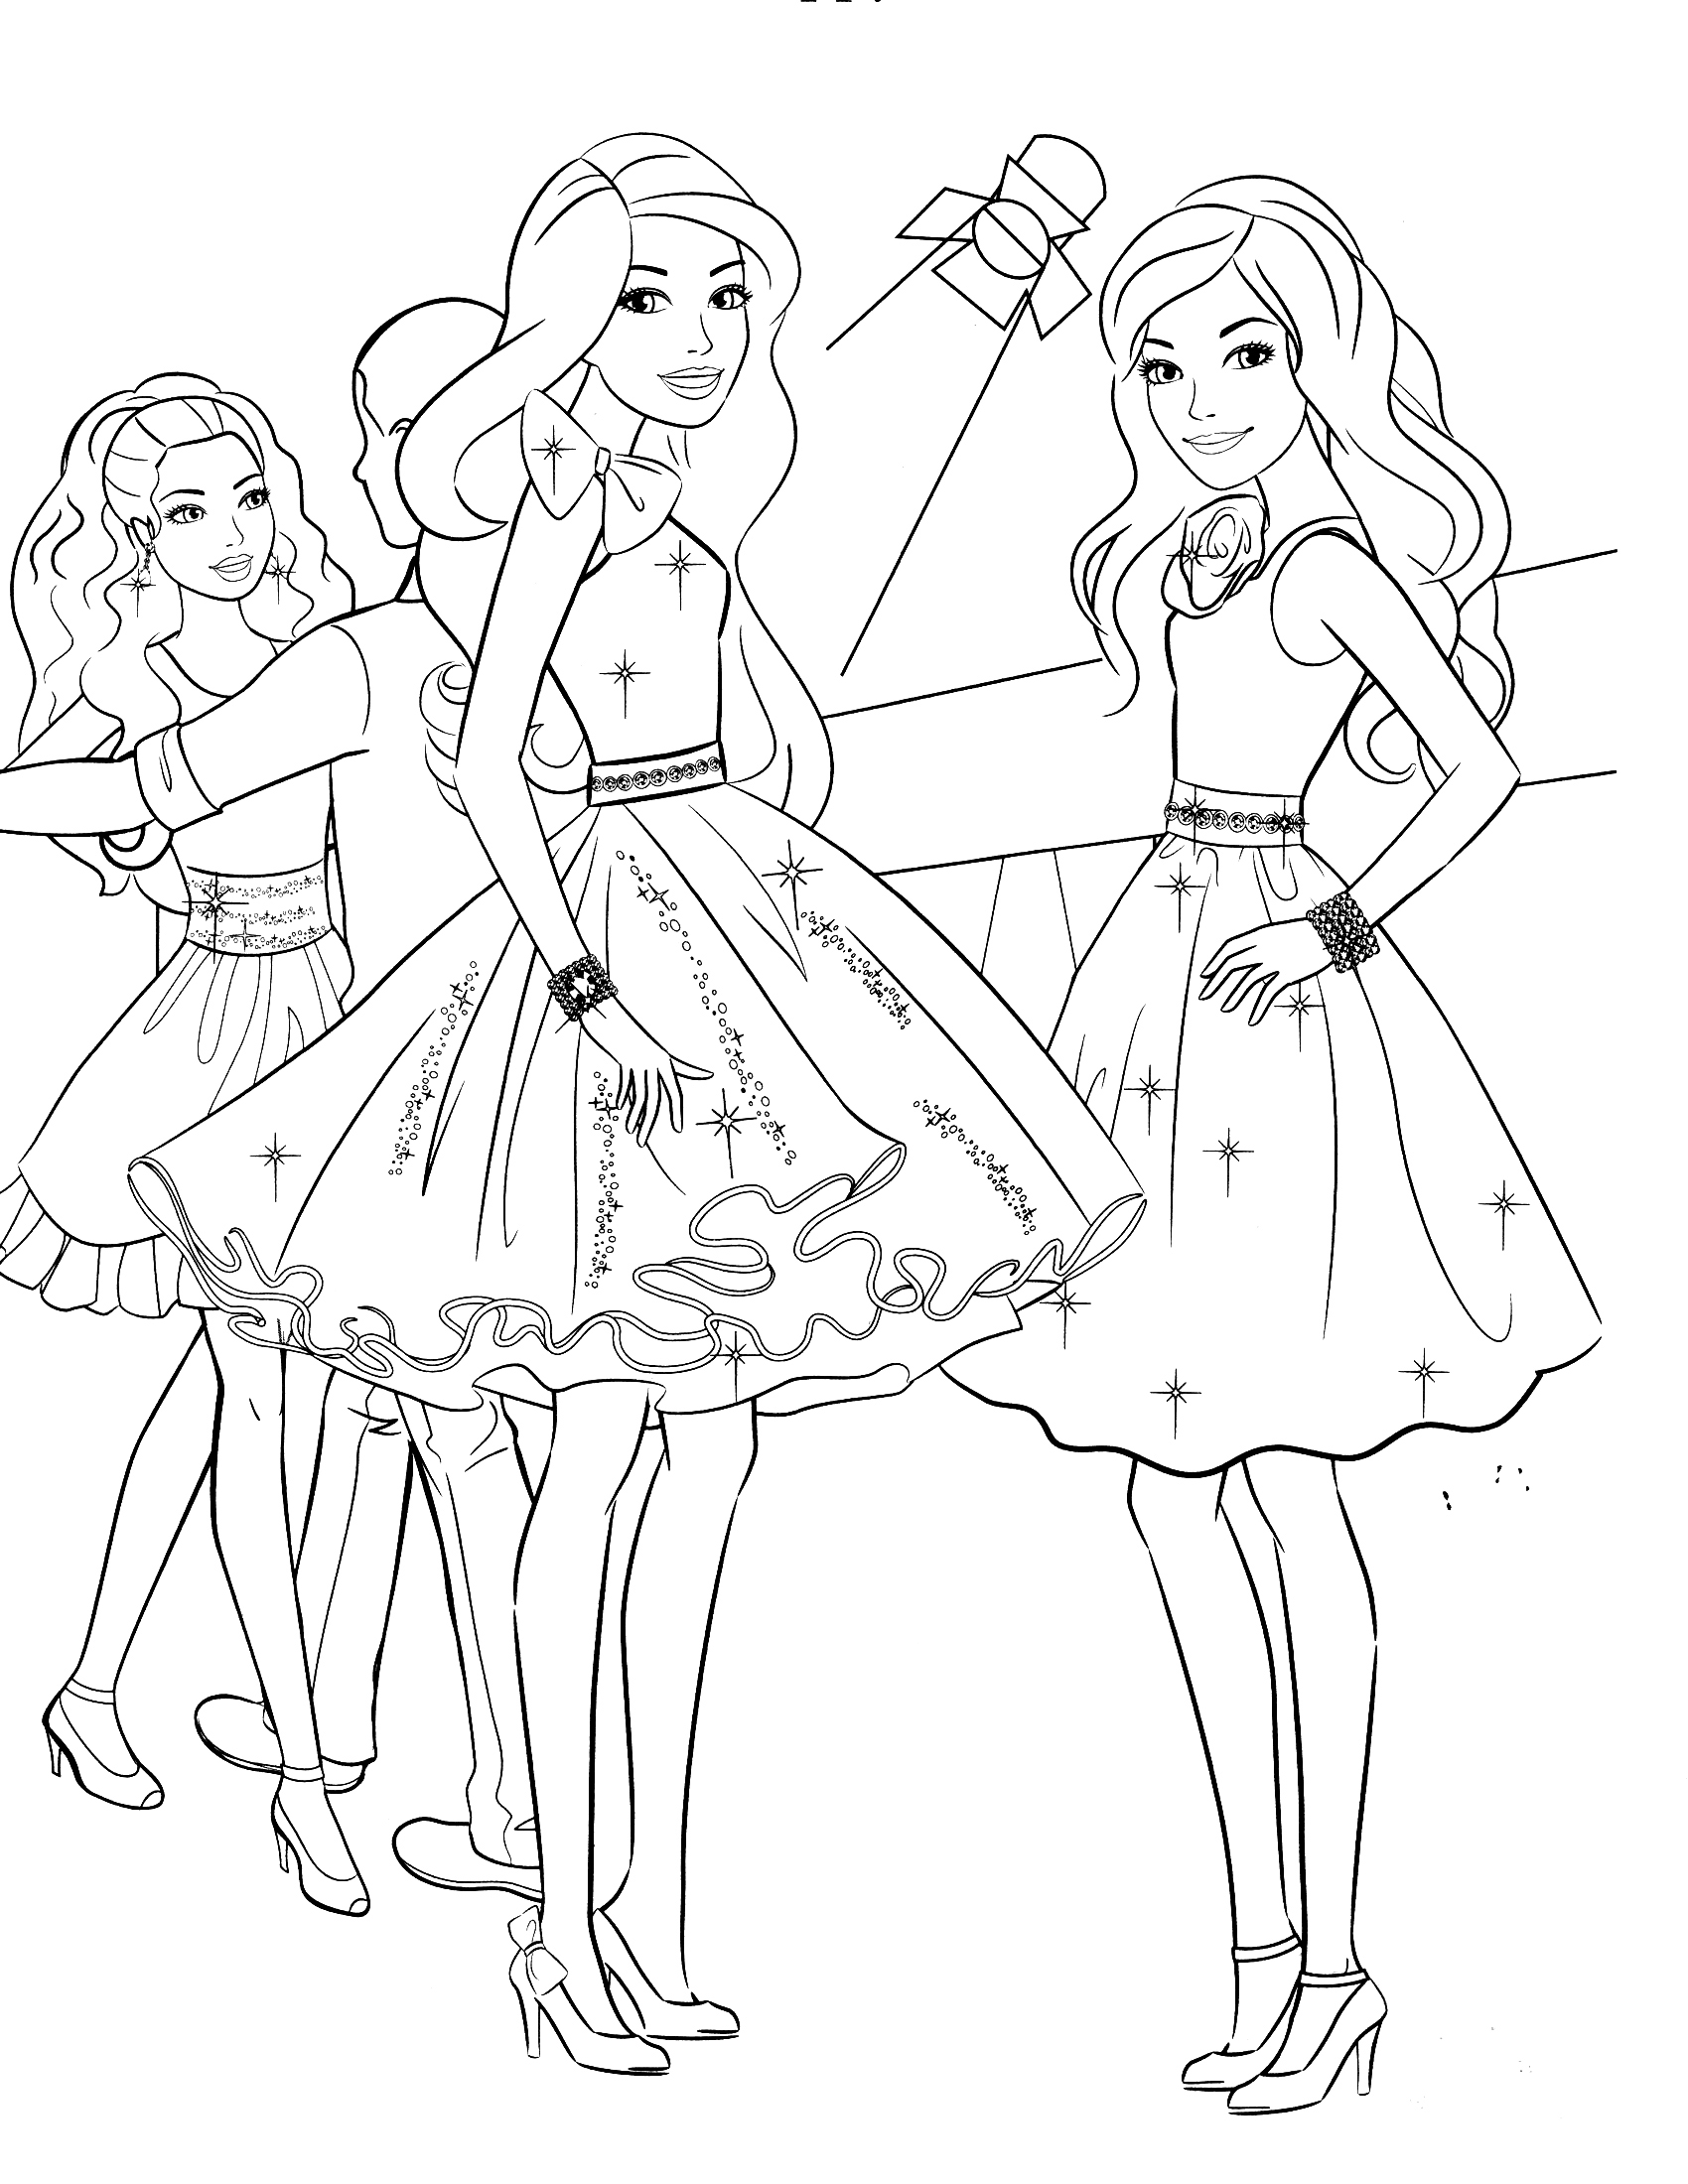 barbie coloring book free printable barbie coloring pages for kids coloring book barbie